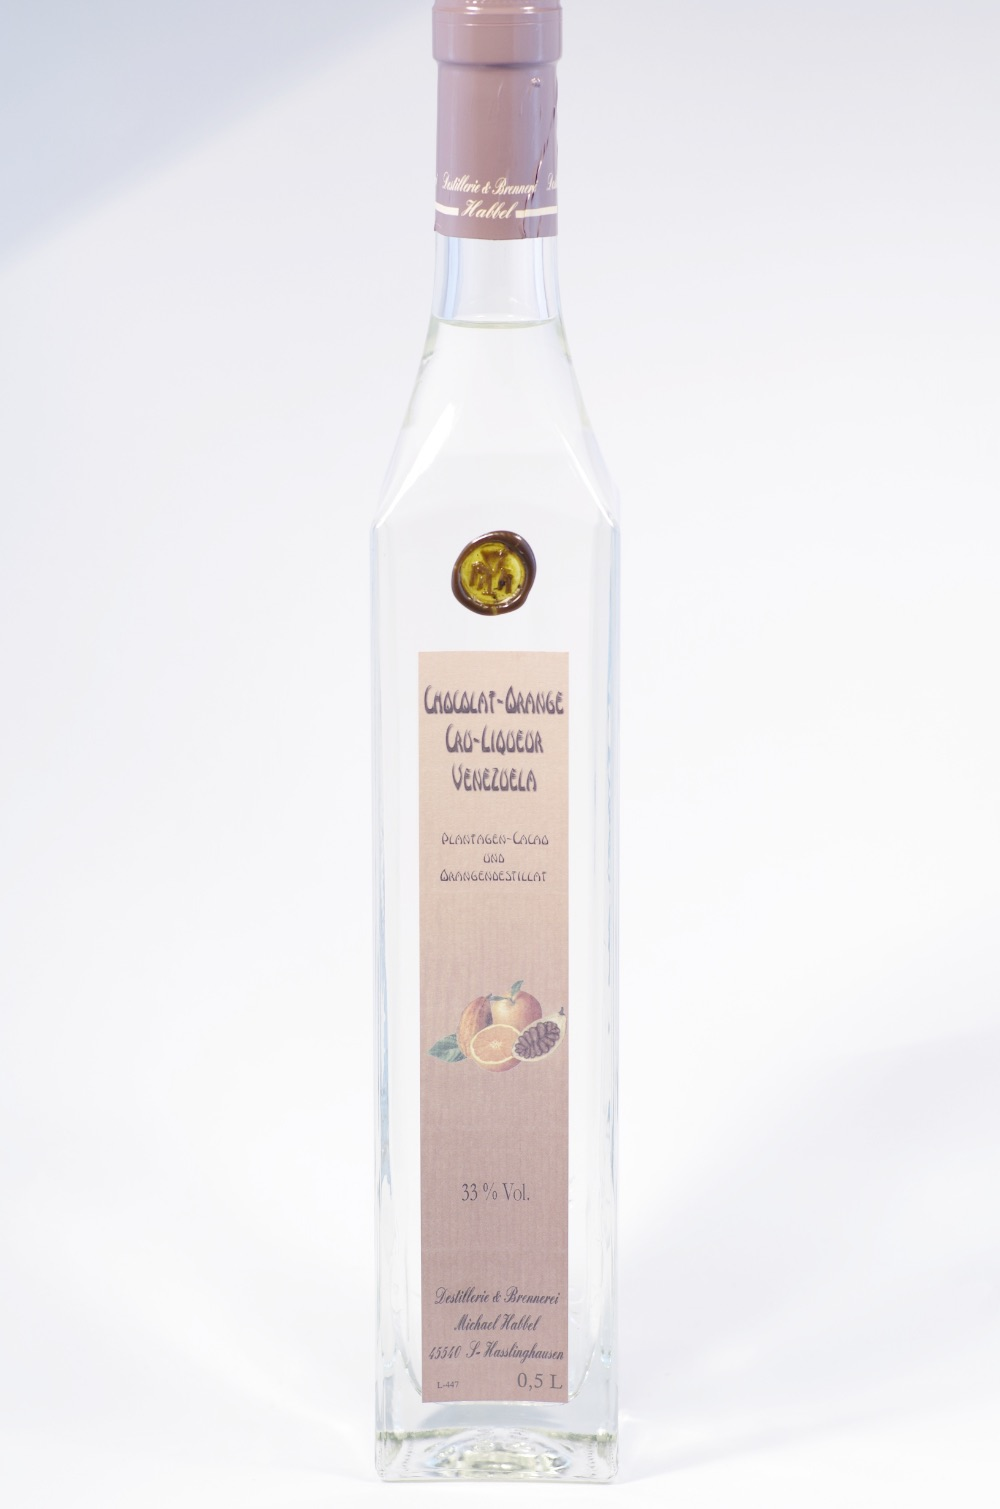 Habbel Chocolat-Orange Cru-Liqueur Bild